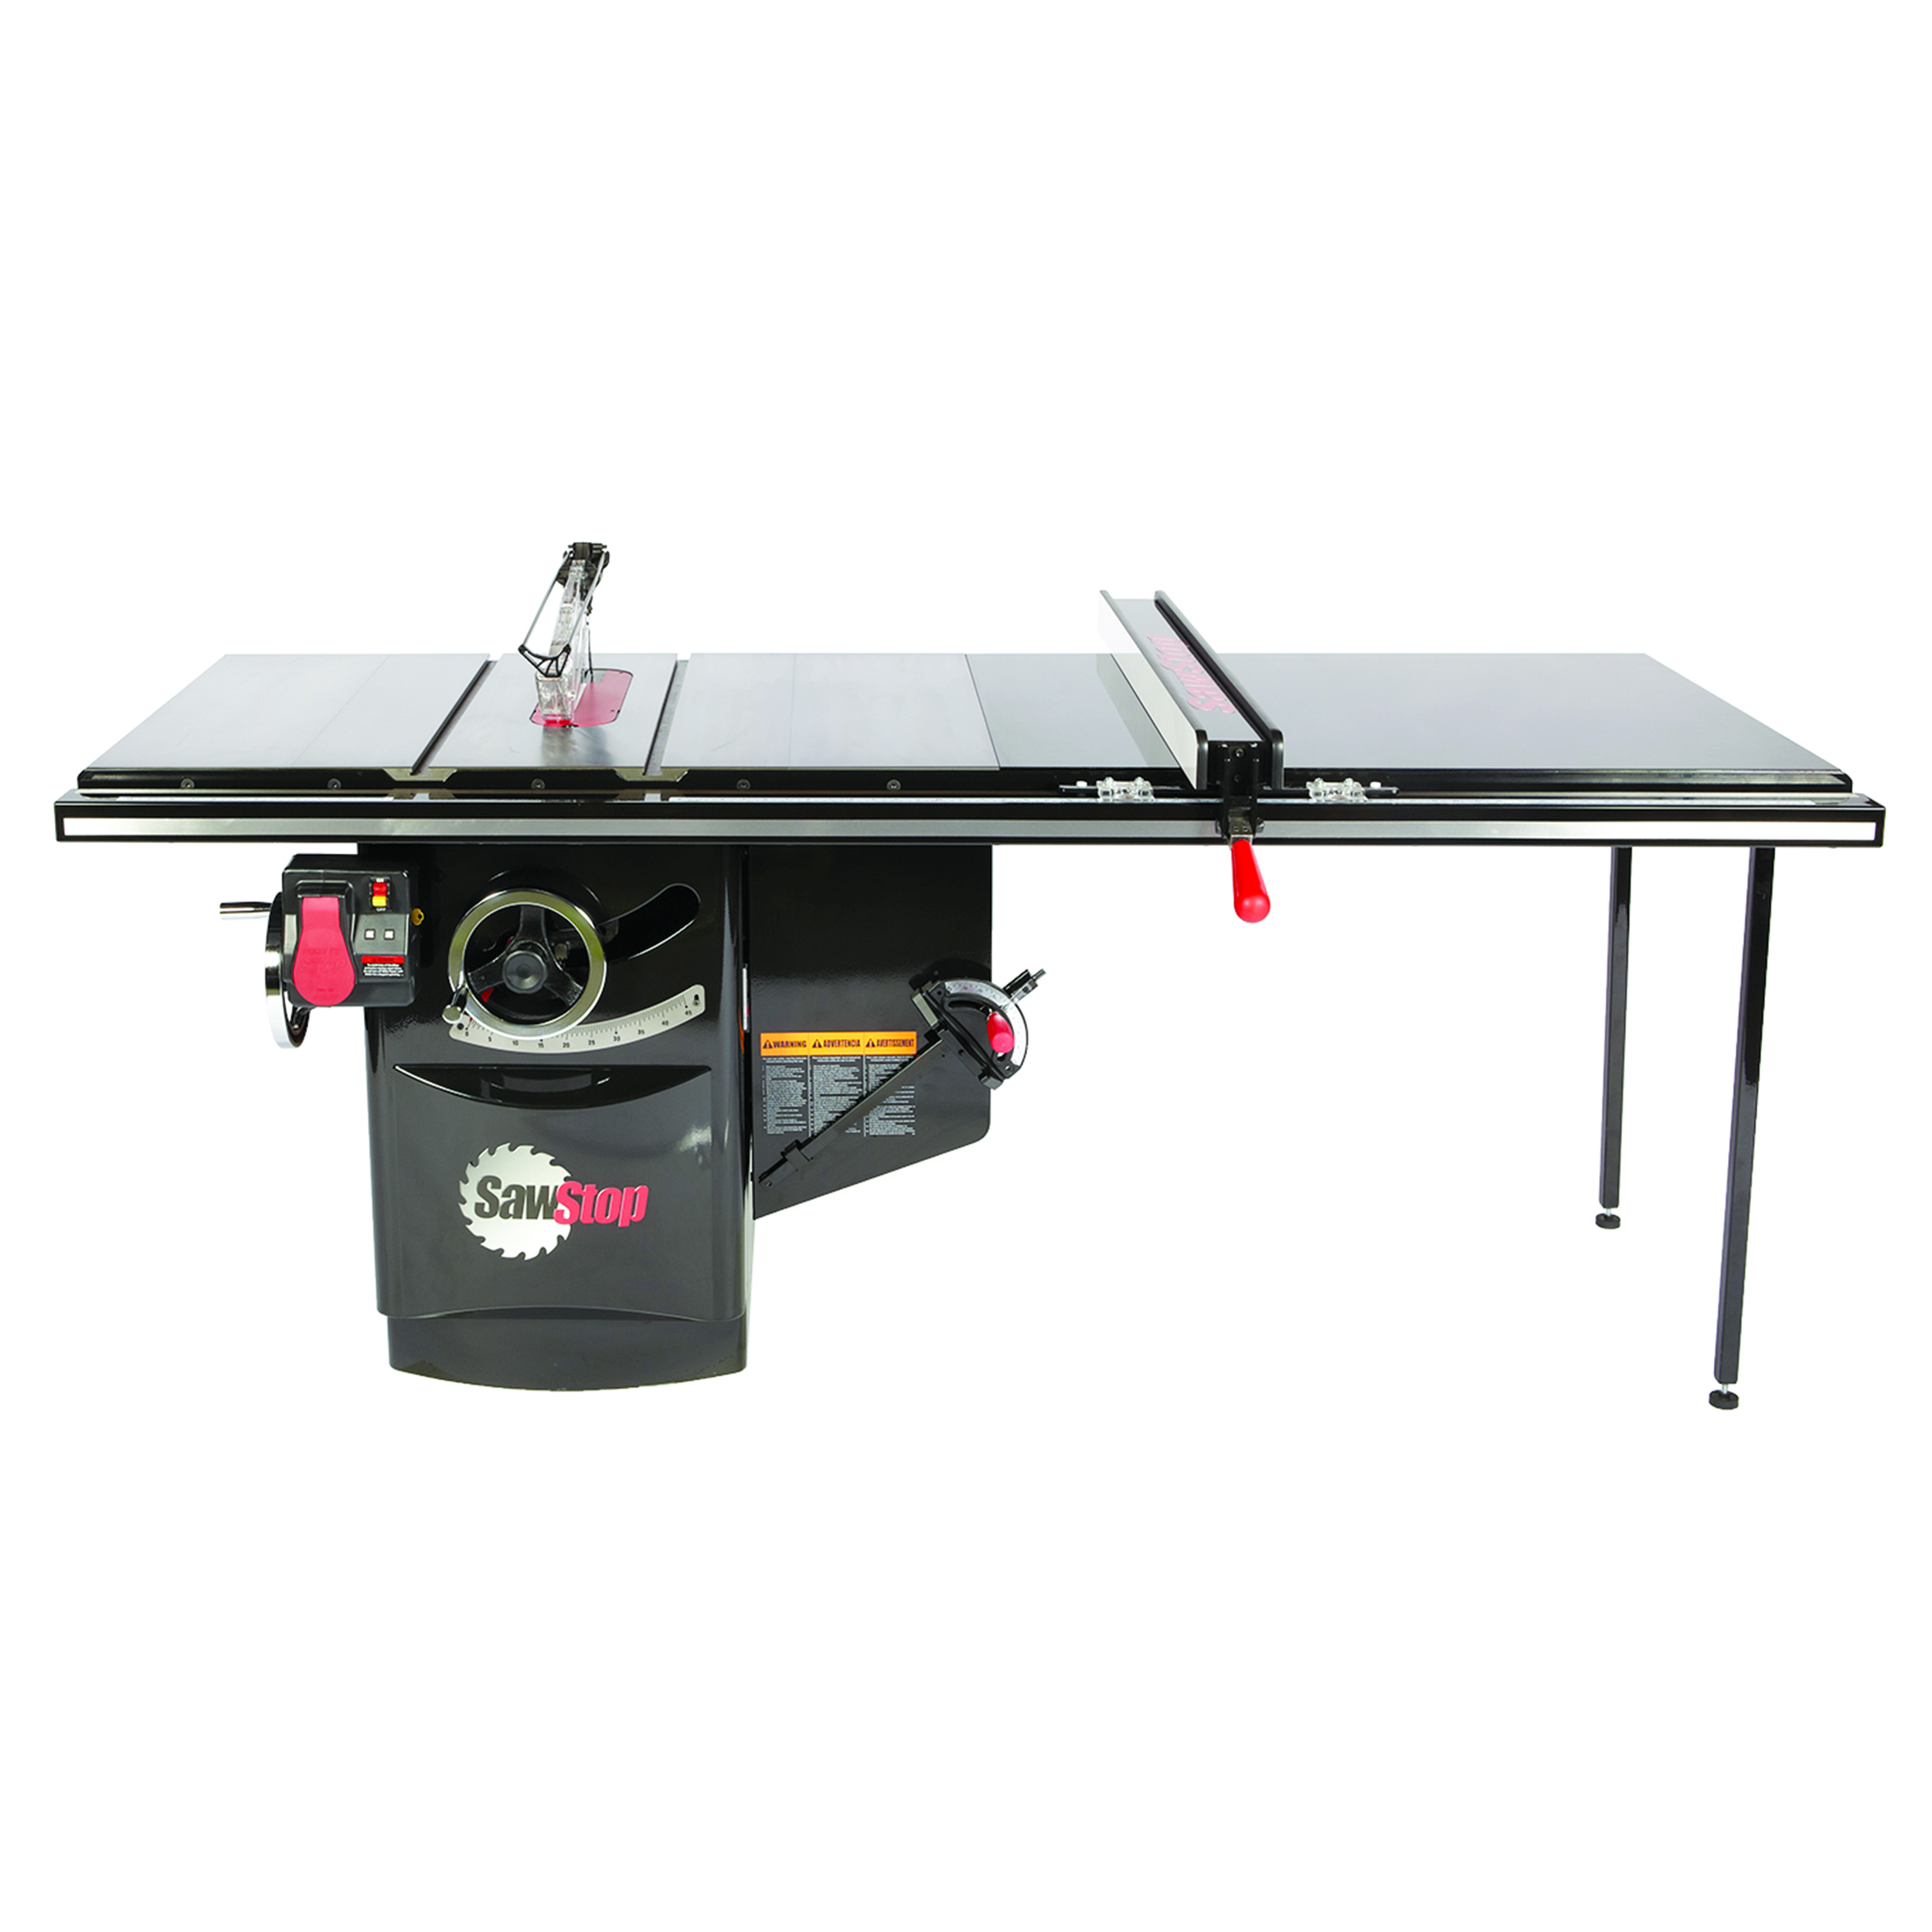 3HP 1PH 230V Industrial Cabinet Saw with 52